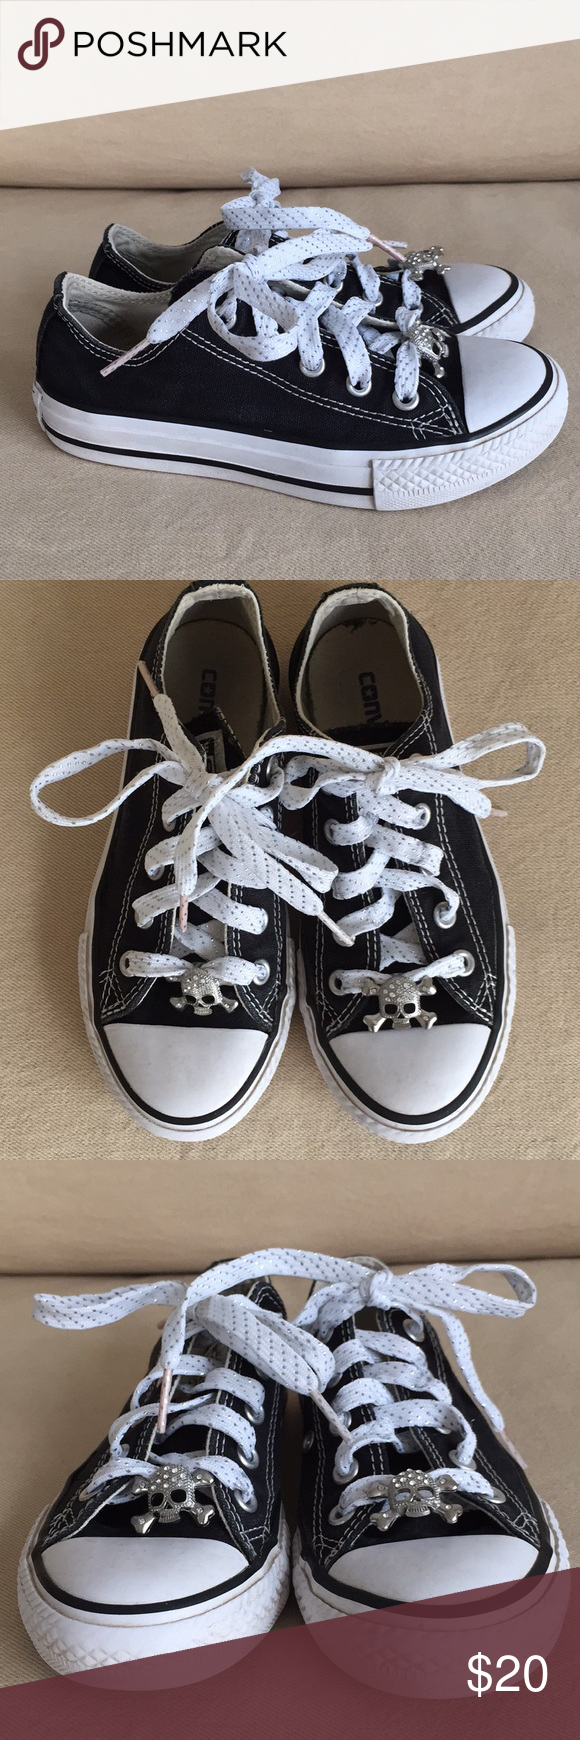 Converse High-Tops Chuck Taylor Kids 12 Kids black Converse in great  pre-owned 184a3e16d